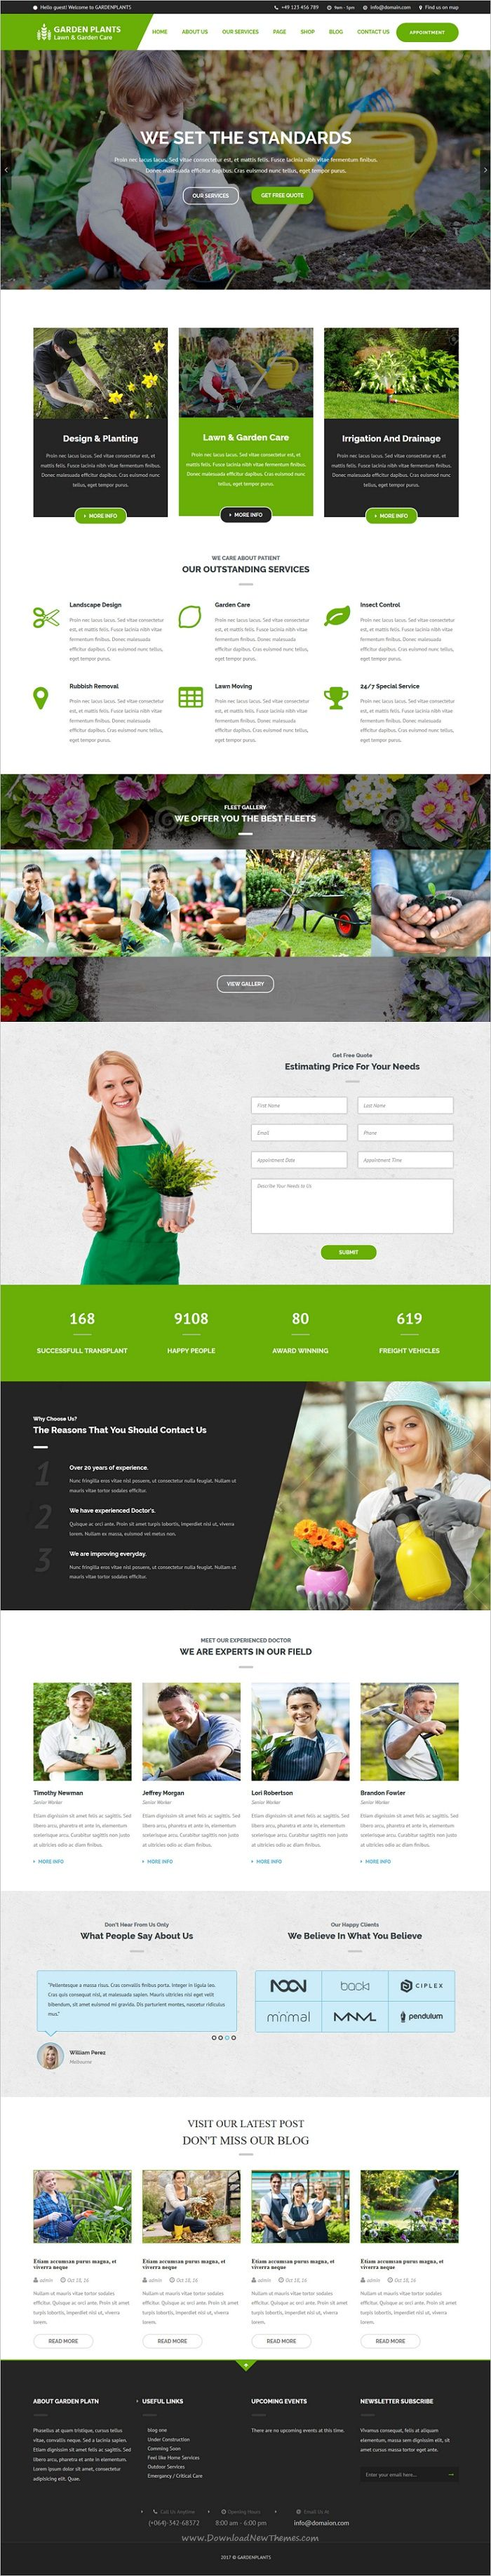 Garden plants is a wonderful 3in1 responsive #WordPress theme for #webdev stunning #lawn service, #landscaping companies, gardening business or florists websites download now➩ https://themeforest.net/item/garden-plants-gardening-lawn-care-and-landscaping-wordpress-theme/18925532?ref=Datasata